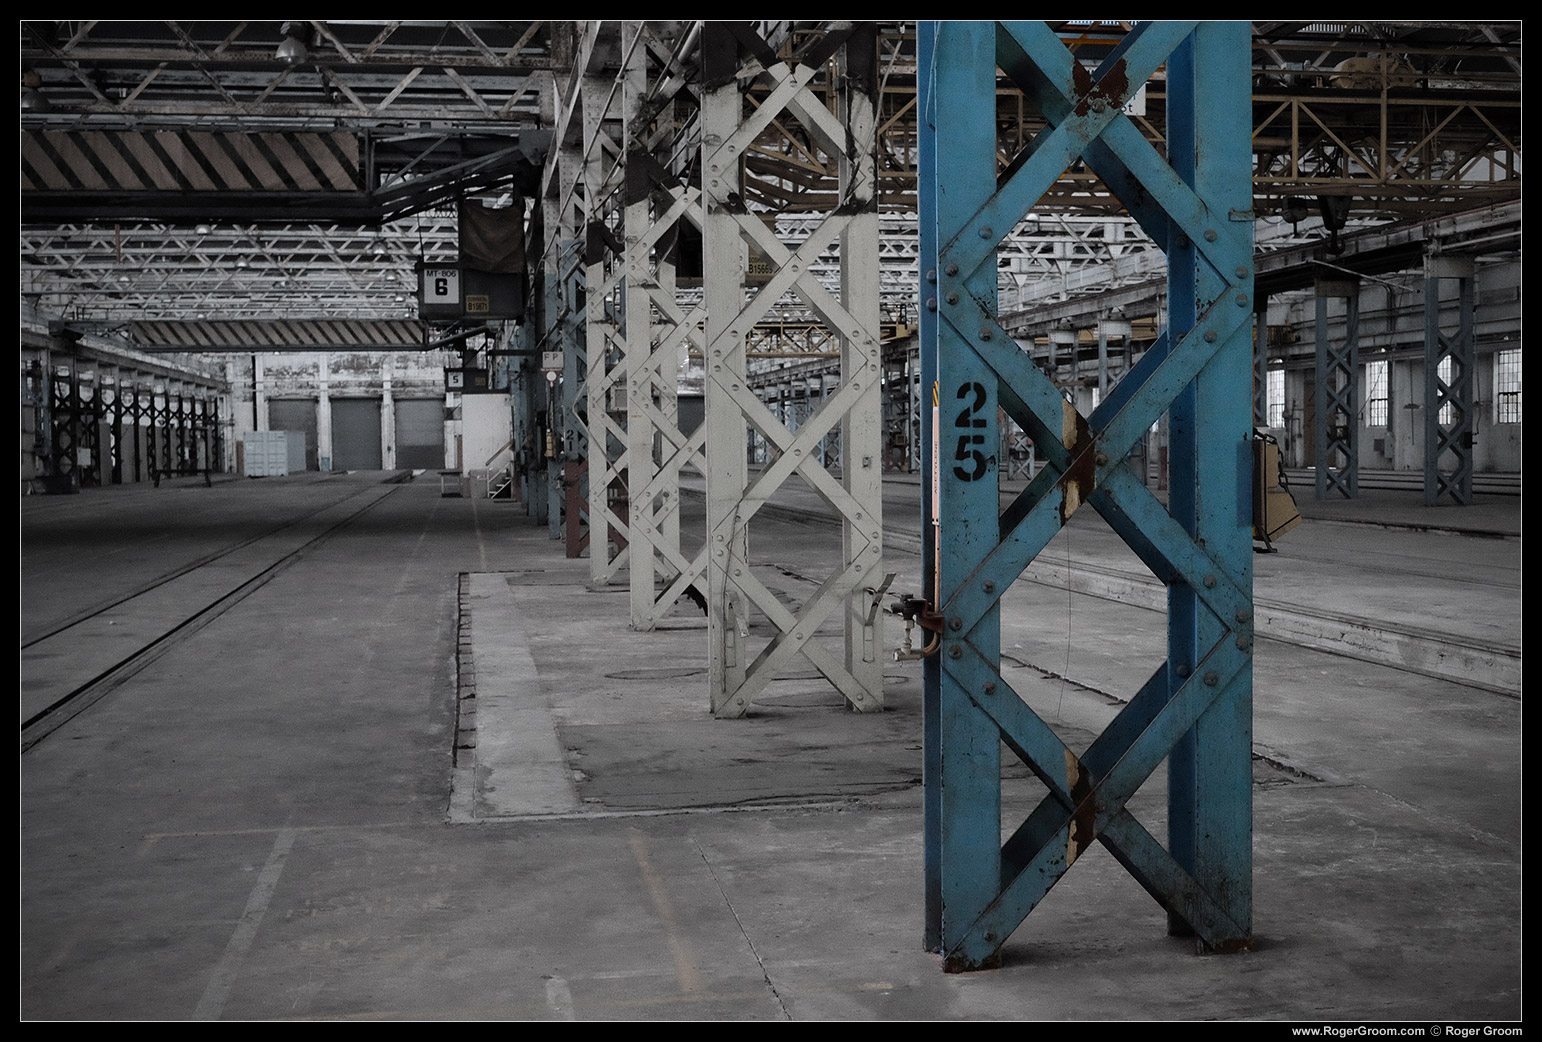 Midland Railway Workshops inside.